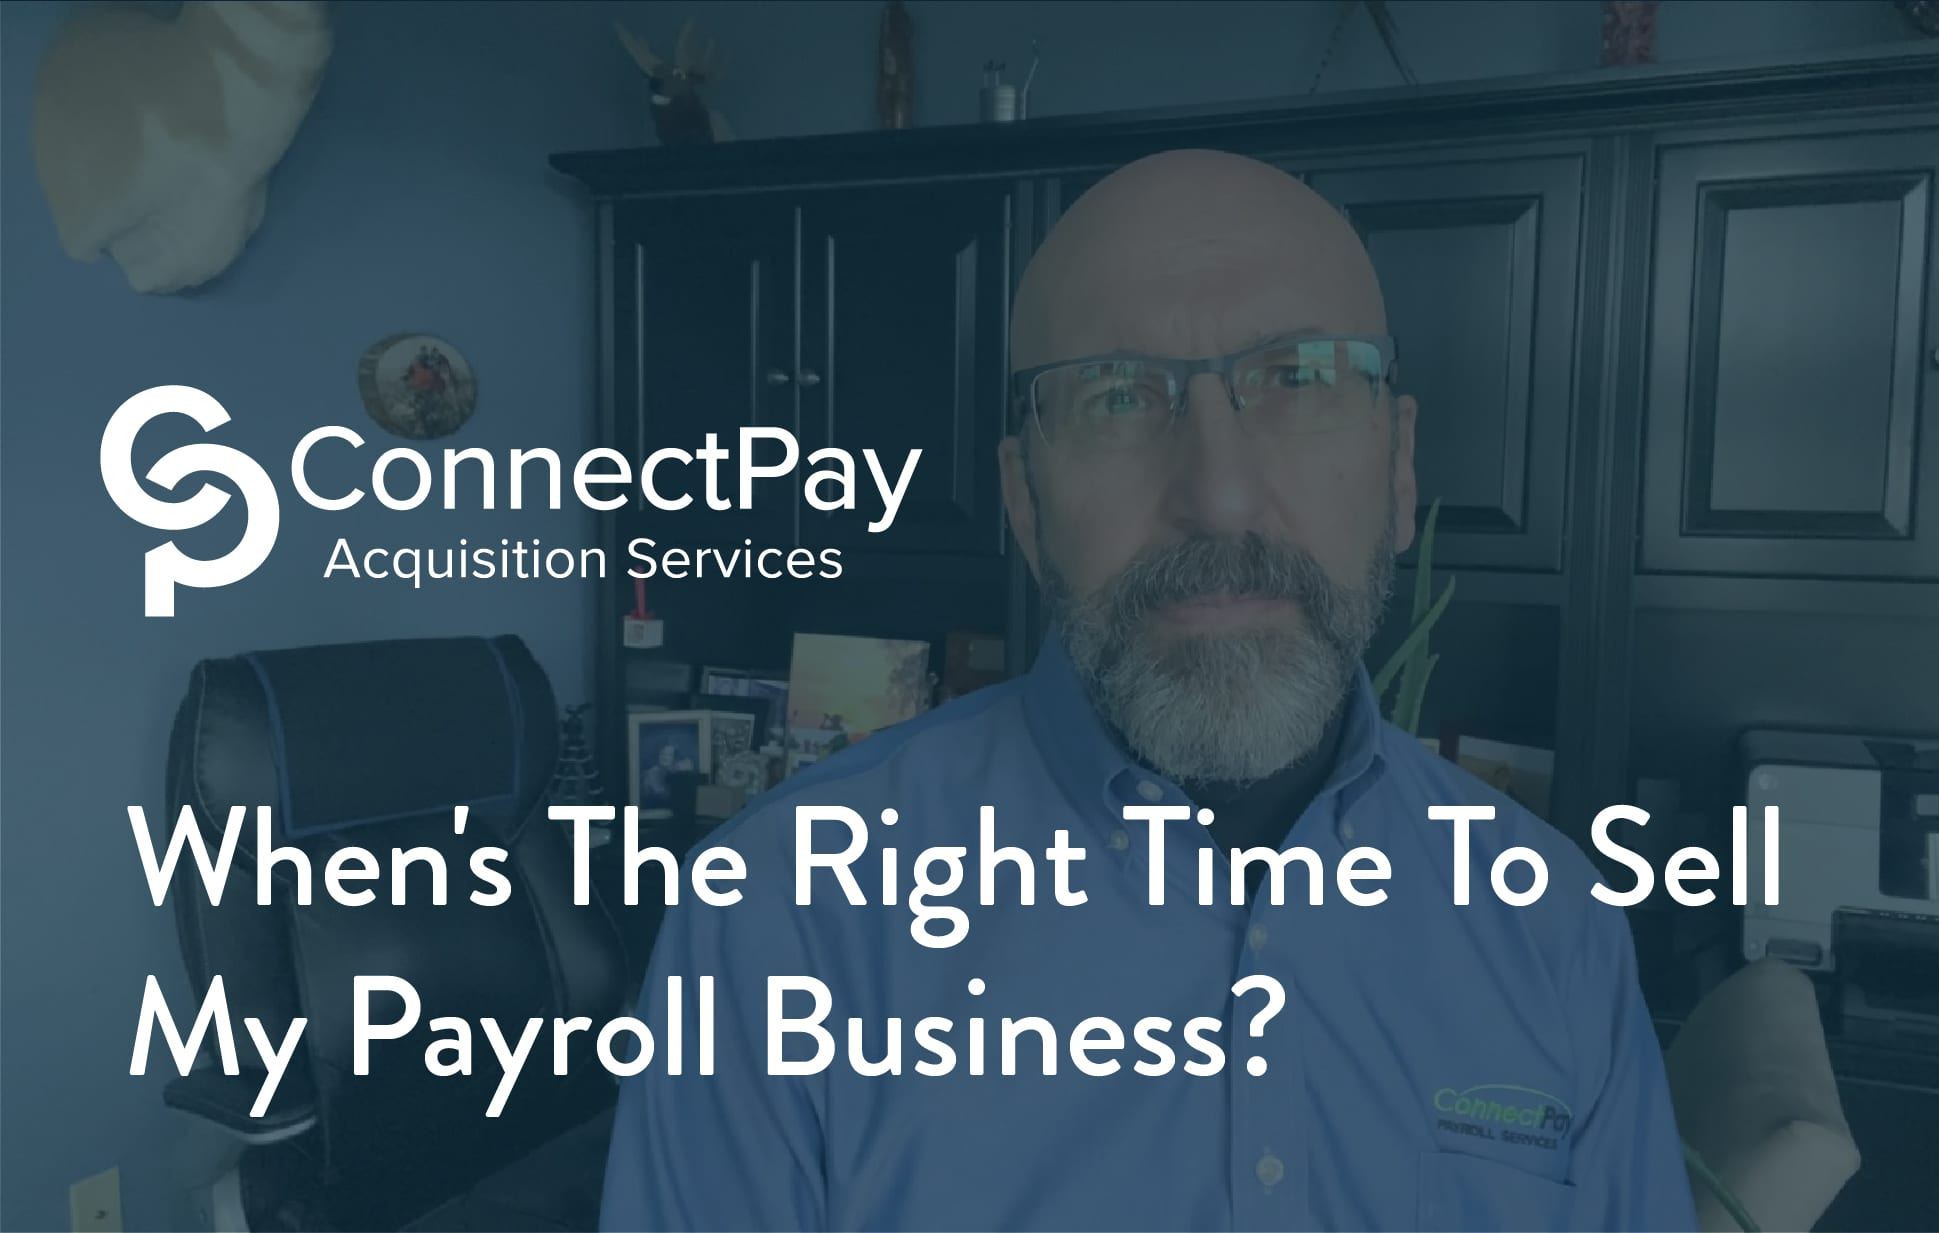 When's The Right Time To Sell My Payroll Business? | ConnectPay